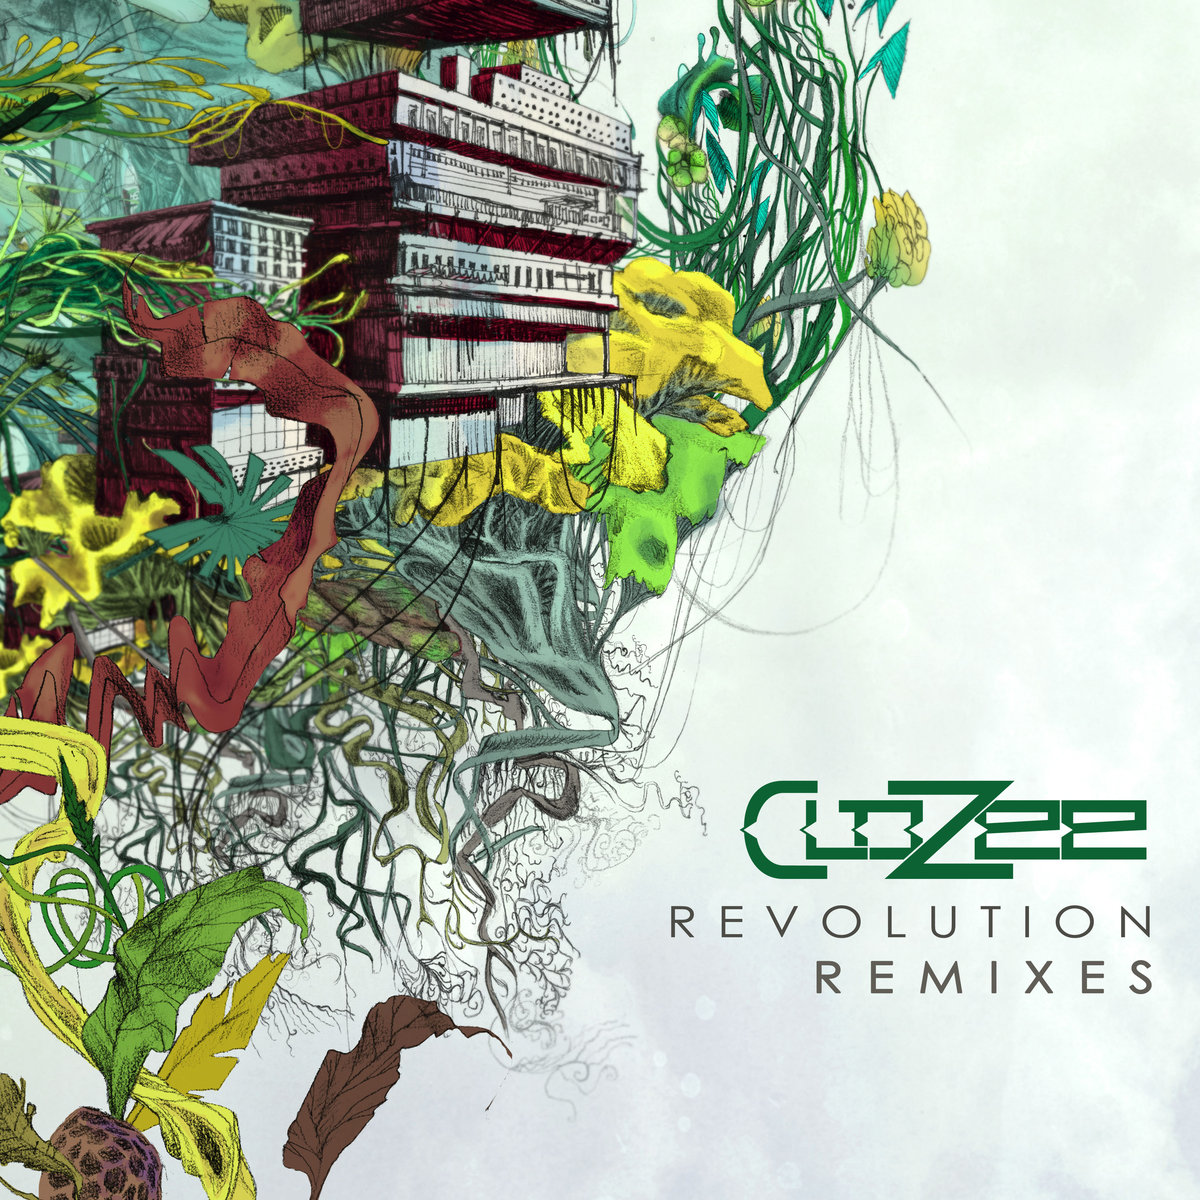 CloZee - Revolution (Flashball13 & Messkla Remix) @ 'Revolution Remixes' album (chill, downtempo)